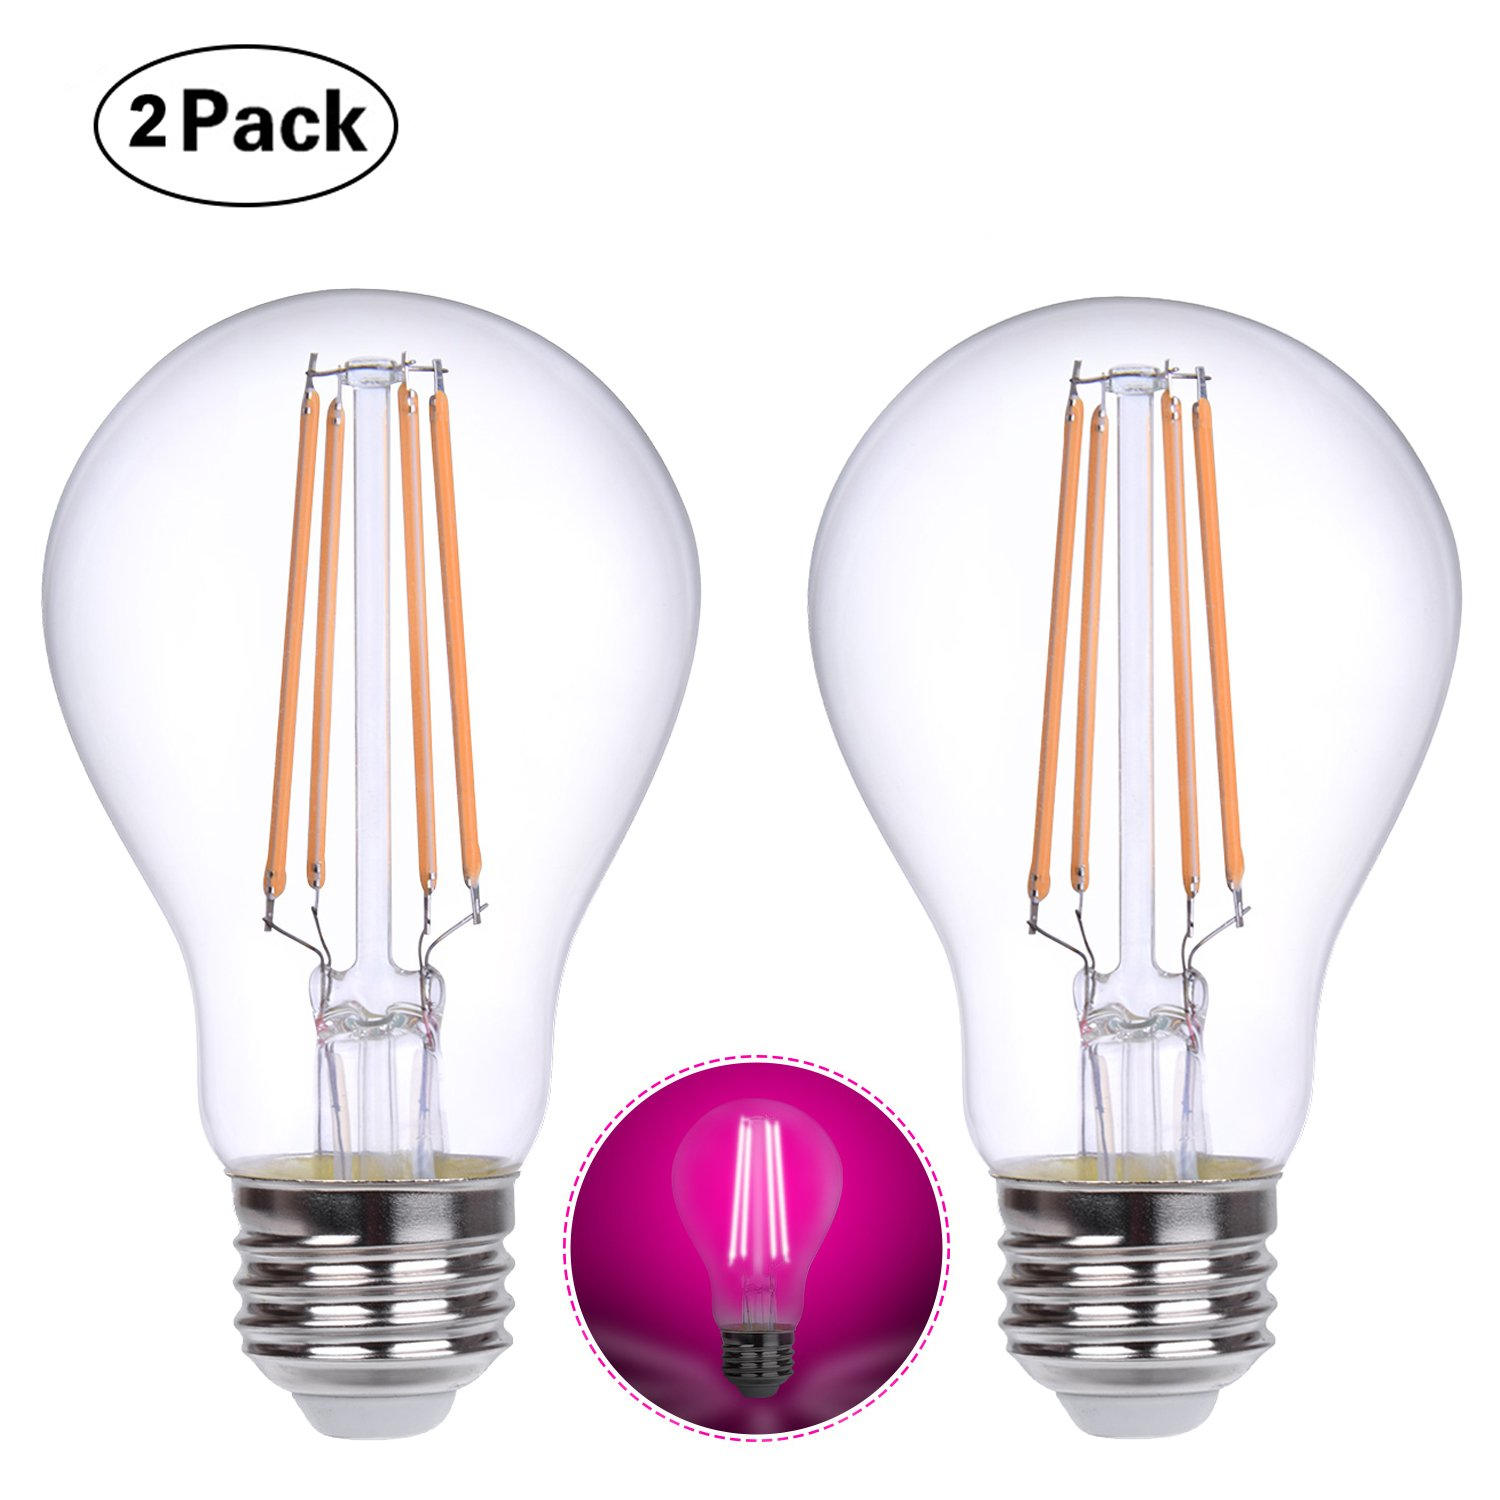 HOLA Plant Light Bulbs, Plant Grow Lights with 360 Degree for Indoor Plants Vegetables Greenhouse and Hydroponic, 6-Watt (60-Watt Equivalent), E26 Base, White Light, 2 Pack